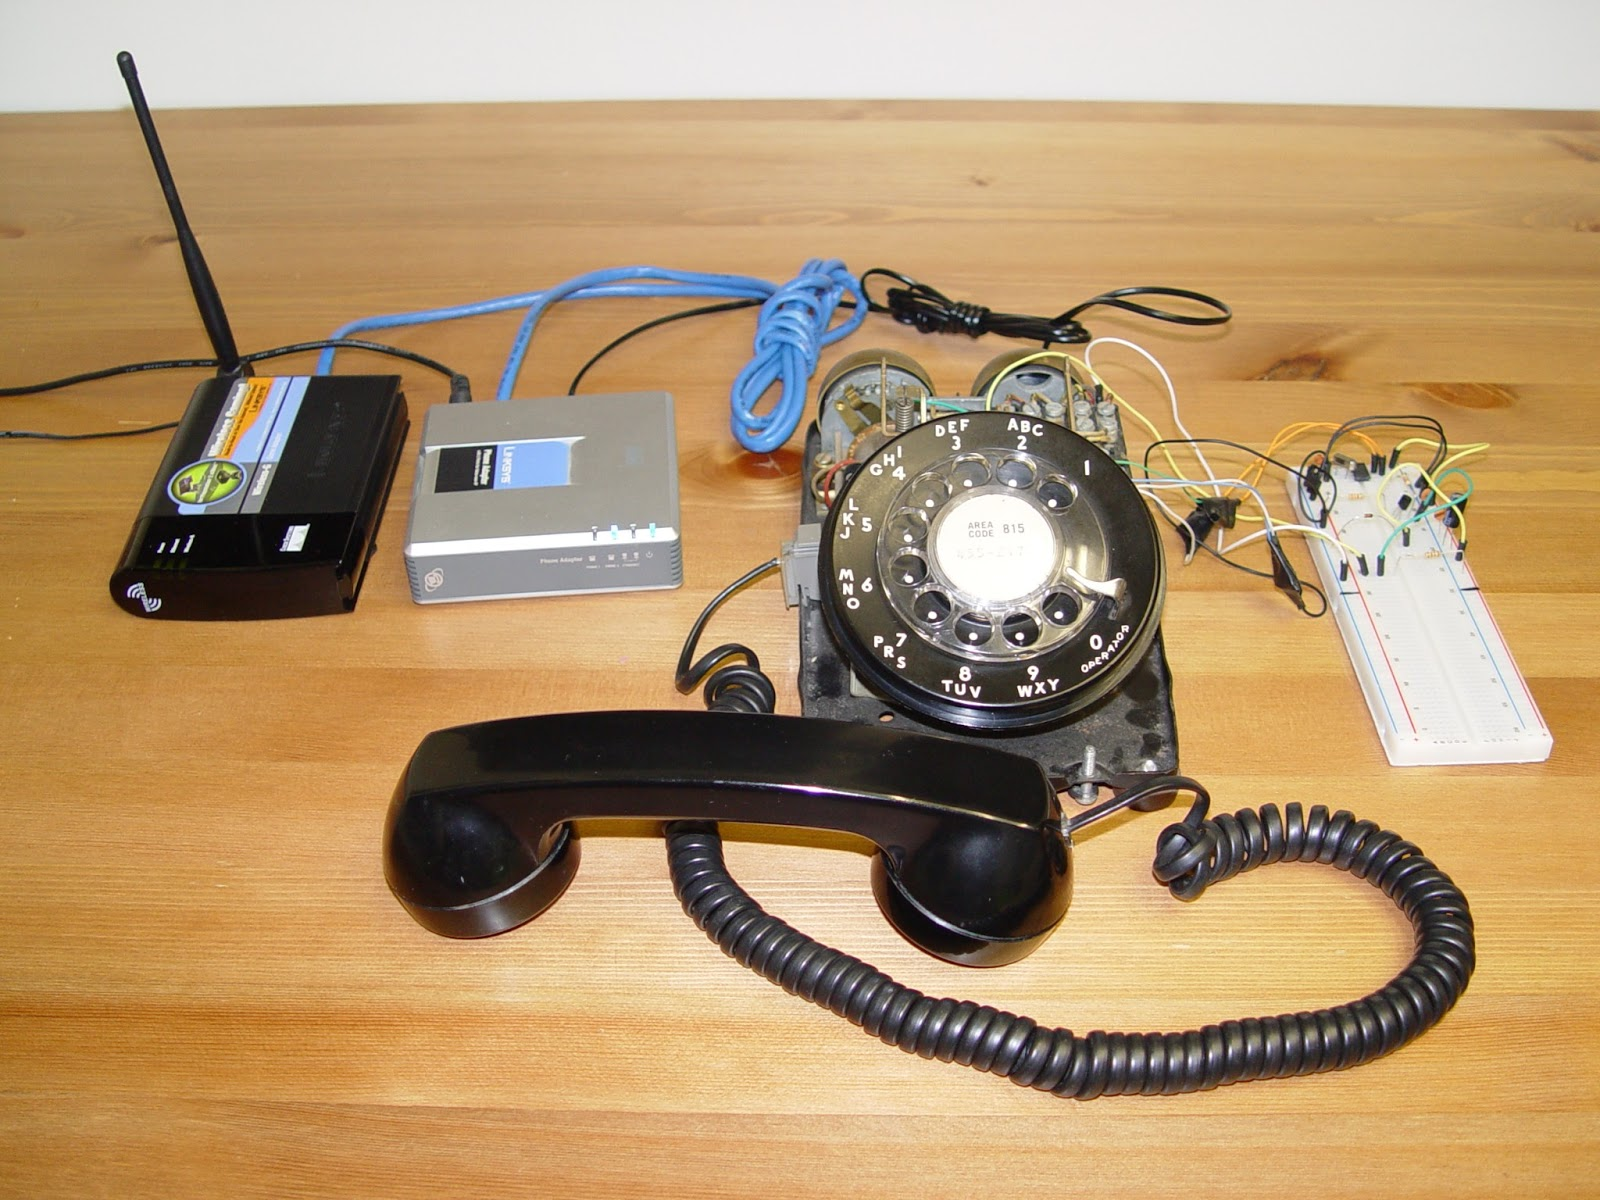 Rotary Dial Telephone Wiring Diagram Volvo 850 1996 Vintage Magneto Old Phone